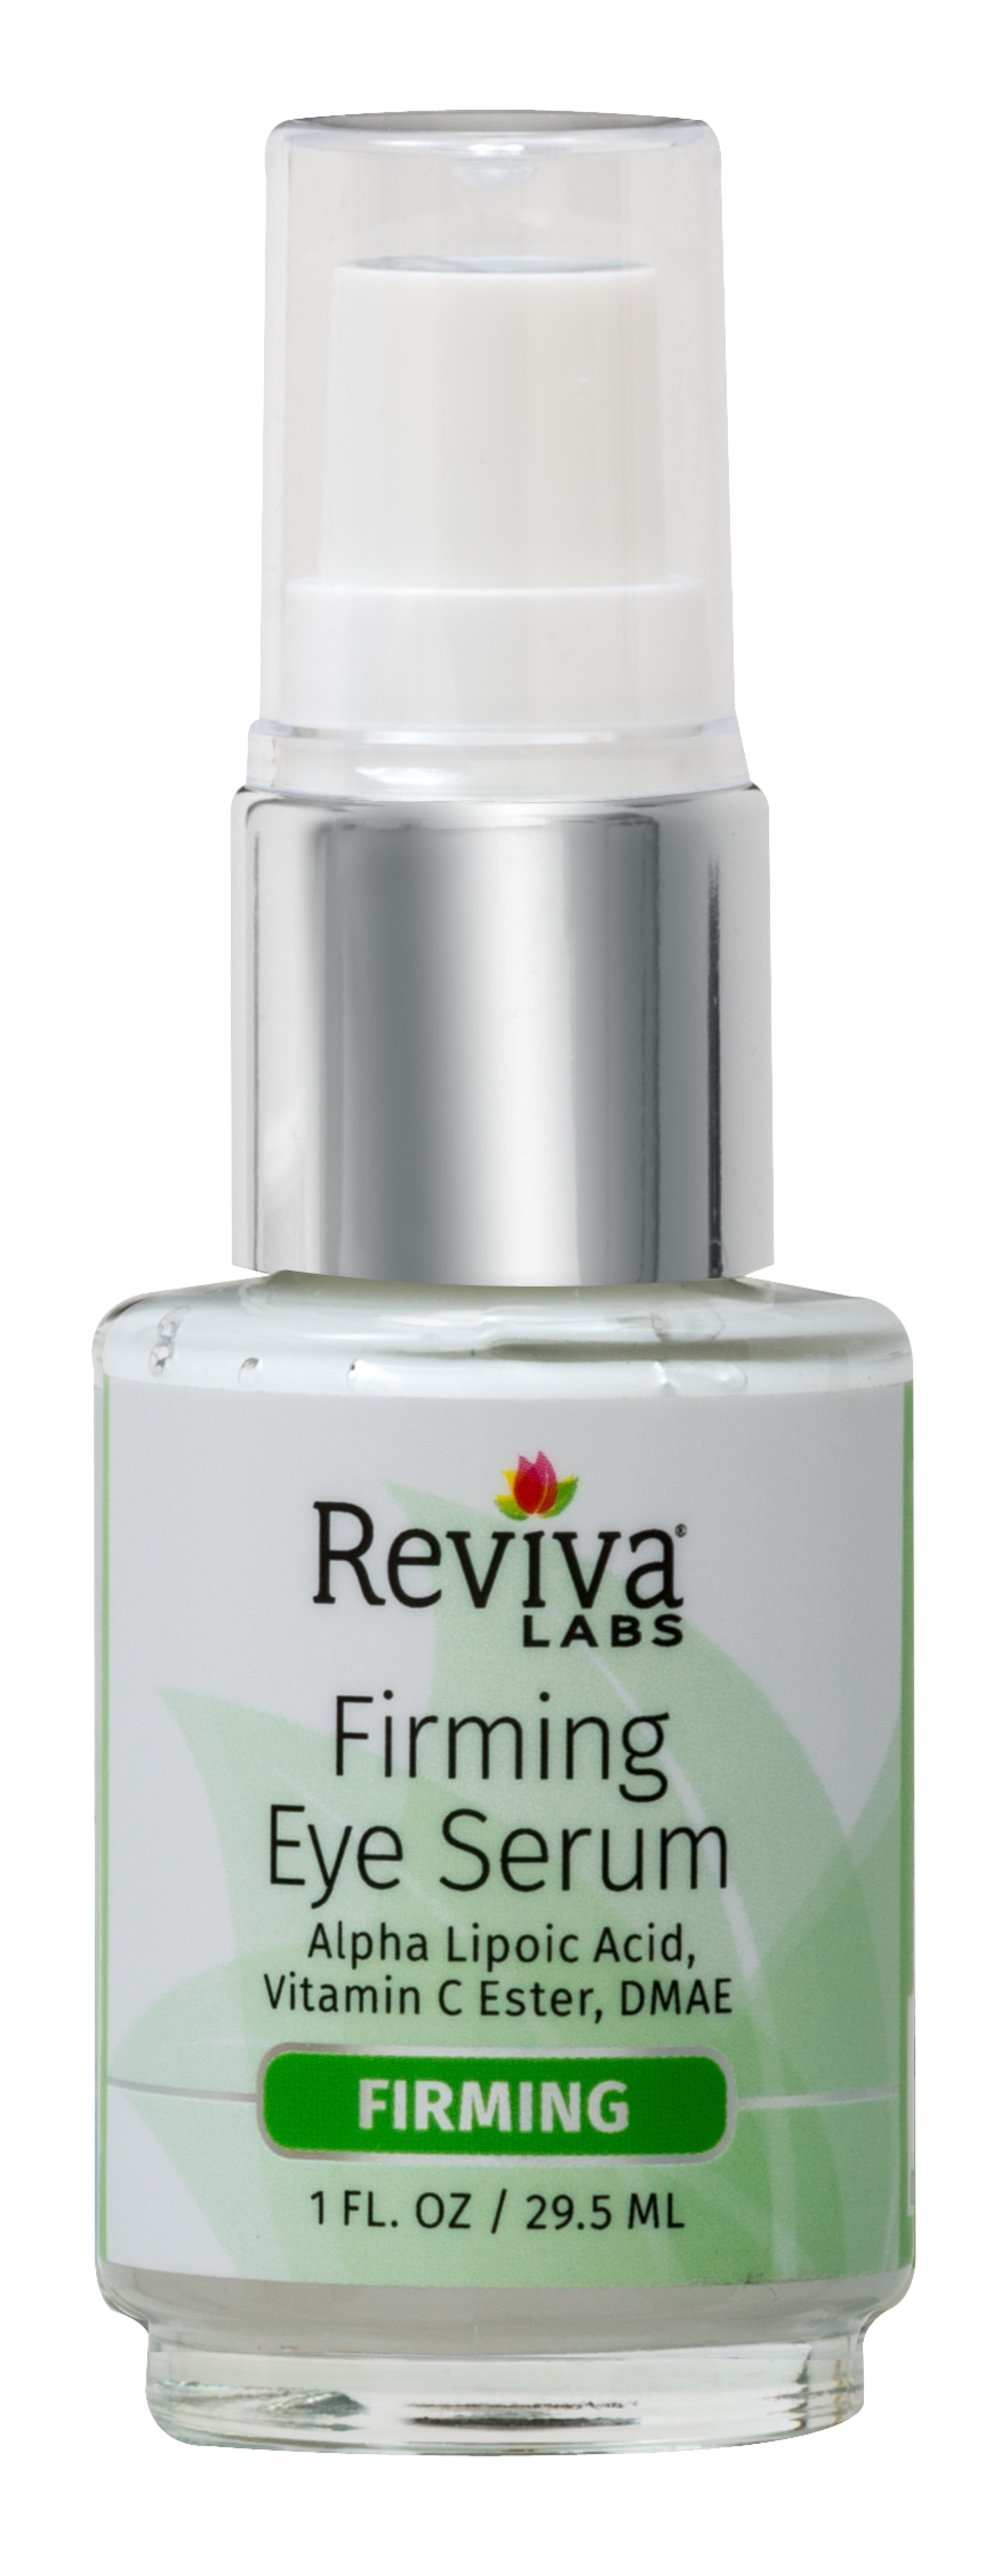 Reviva® Labs Firming Eye Serum <p><strong>From the Manufacturer's Label:</strong></p><p>Reviva Labs Firming Eye Serum has a special base and precise blending, penetrates the thin skin around eyes for  quick absorption. <br /></p><p><strong></strong></p><p>Manufactured by  Reviva® Labs.</p> 1 oz Serum  $14.99